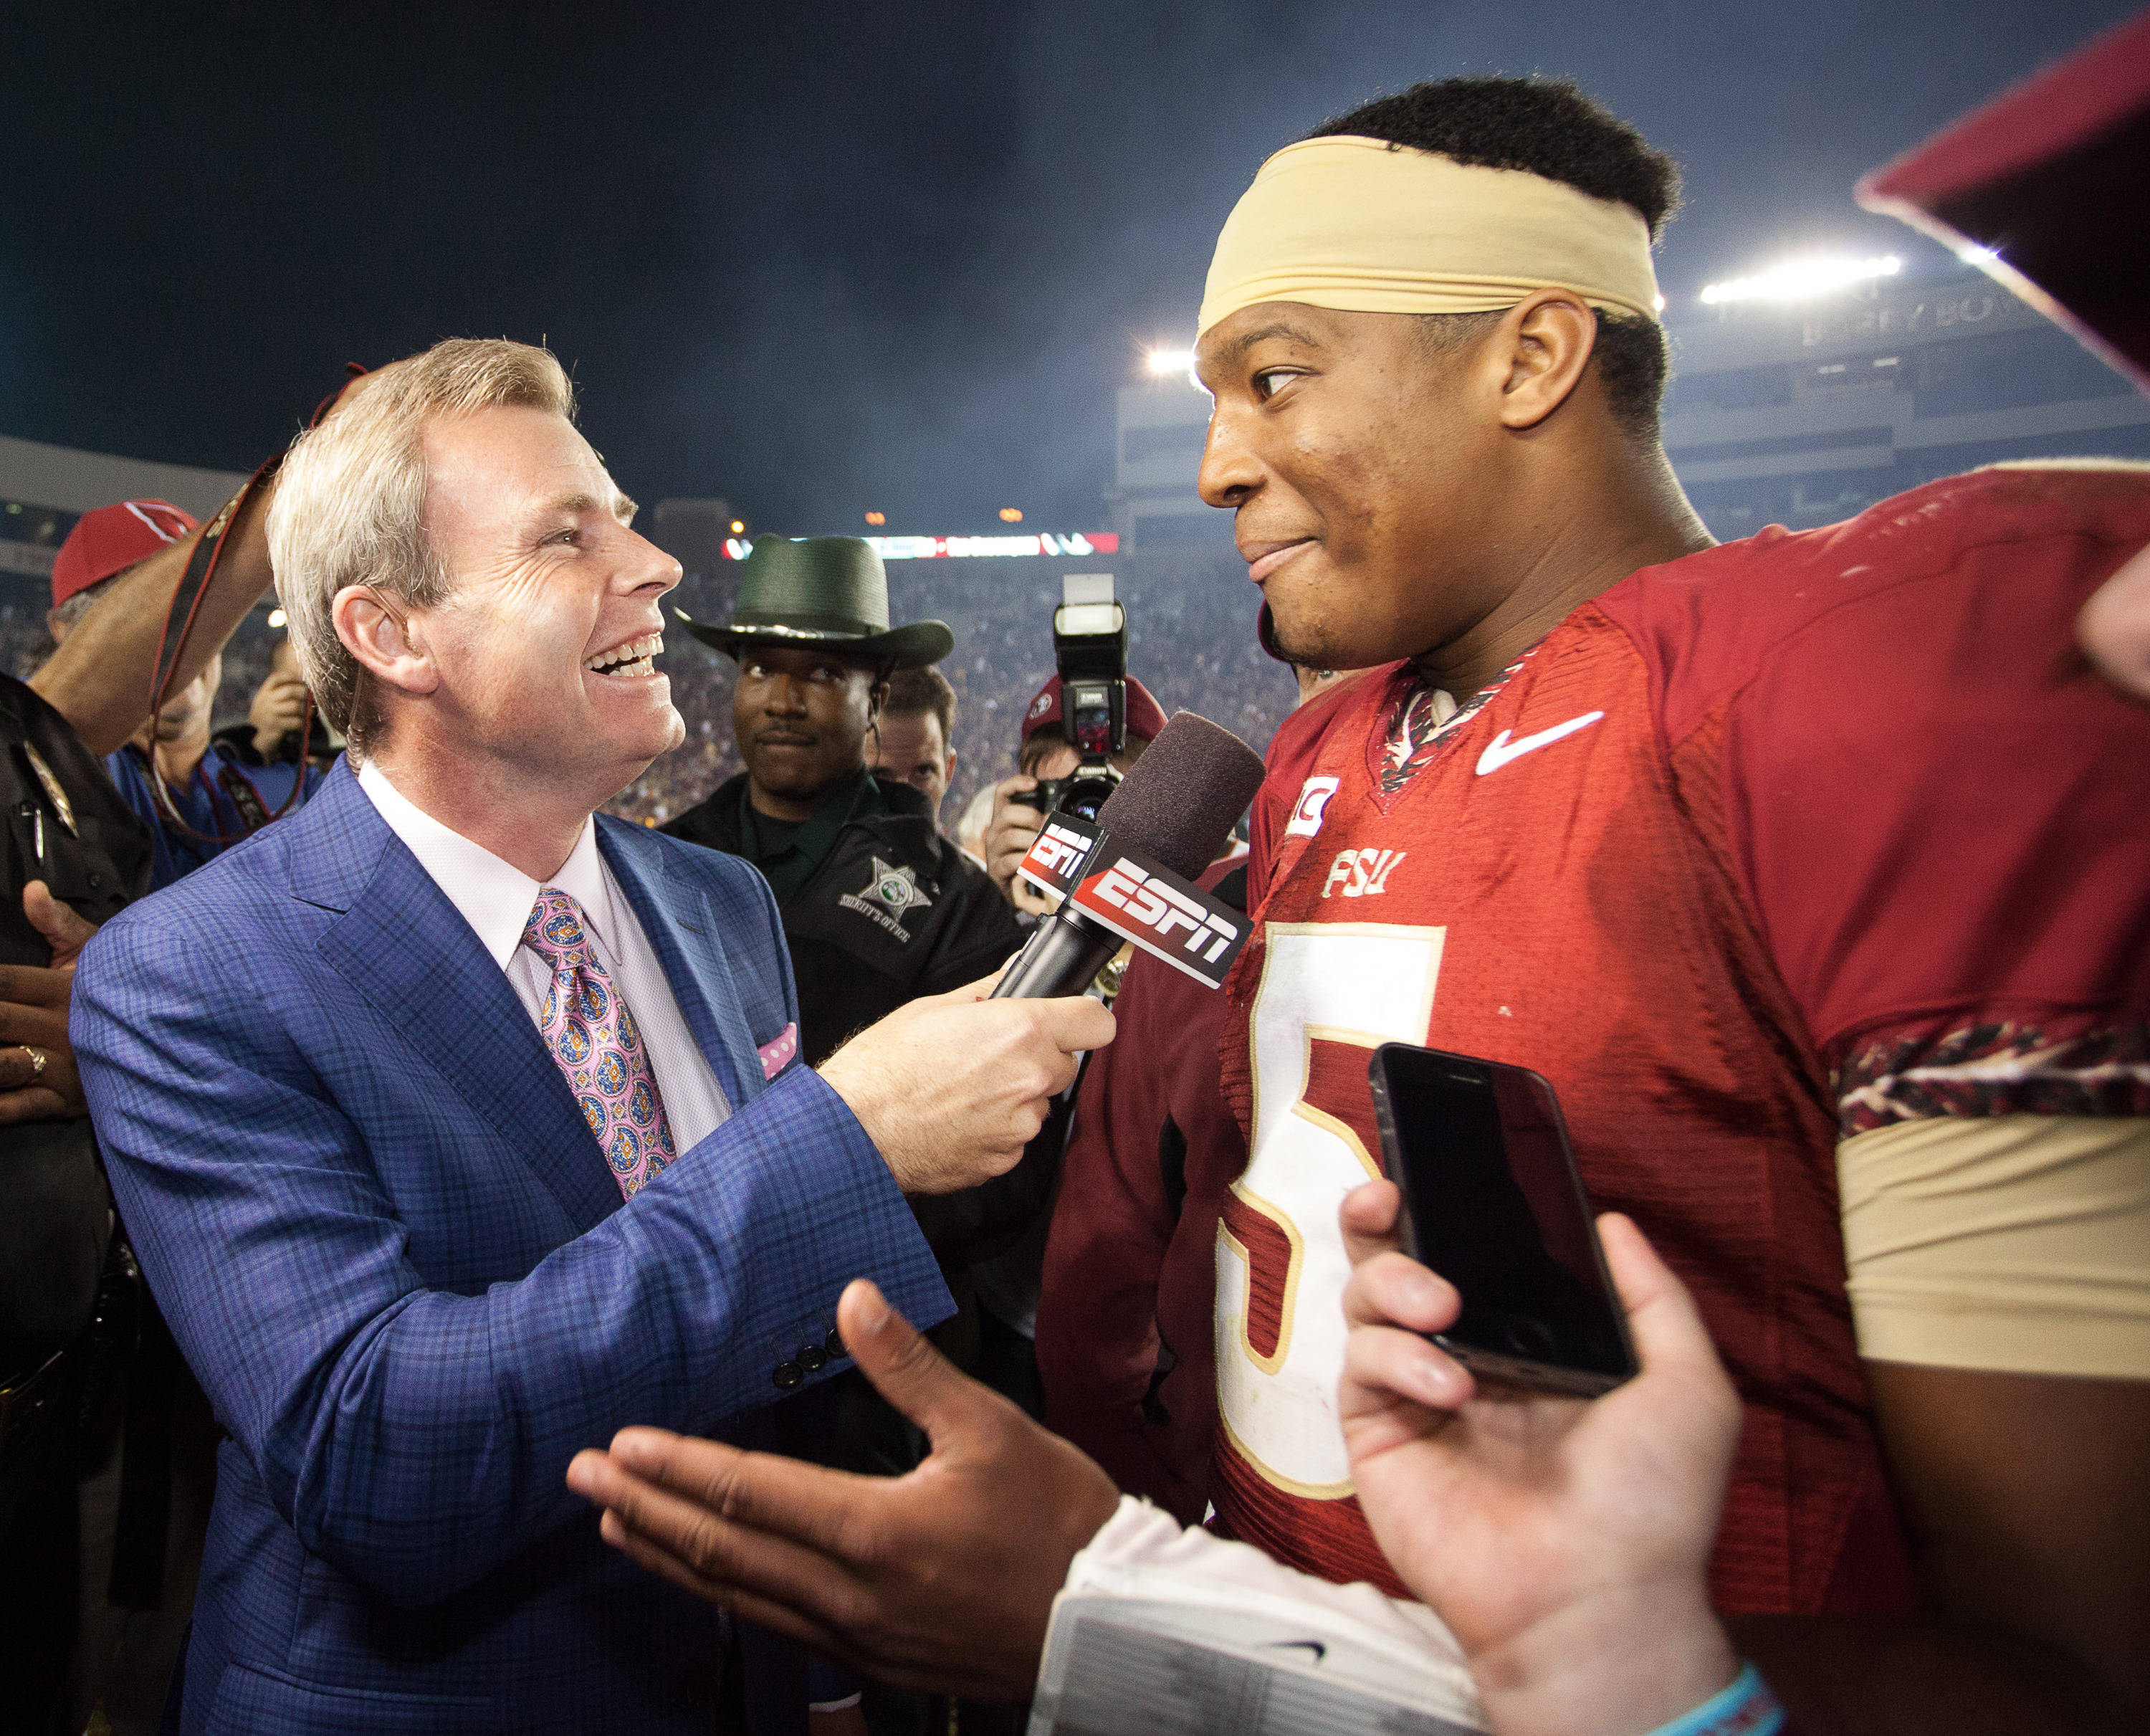 Jameis Winston (5) is interviewed after FSU football's 41-14 win over Miami on Saturday, November 2, 2013 in Tallahassee, Fla. Photo by Michael Schwarz.